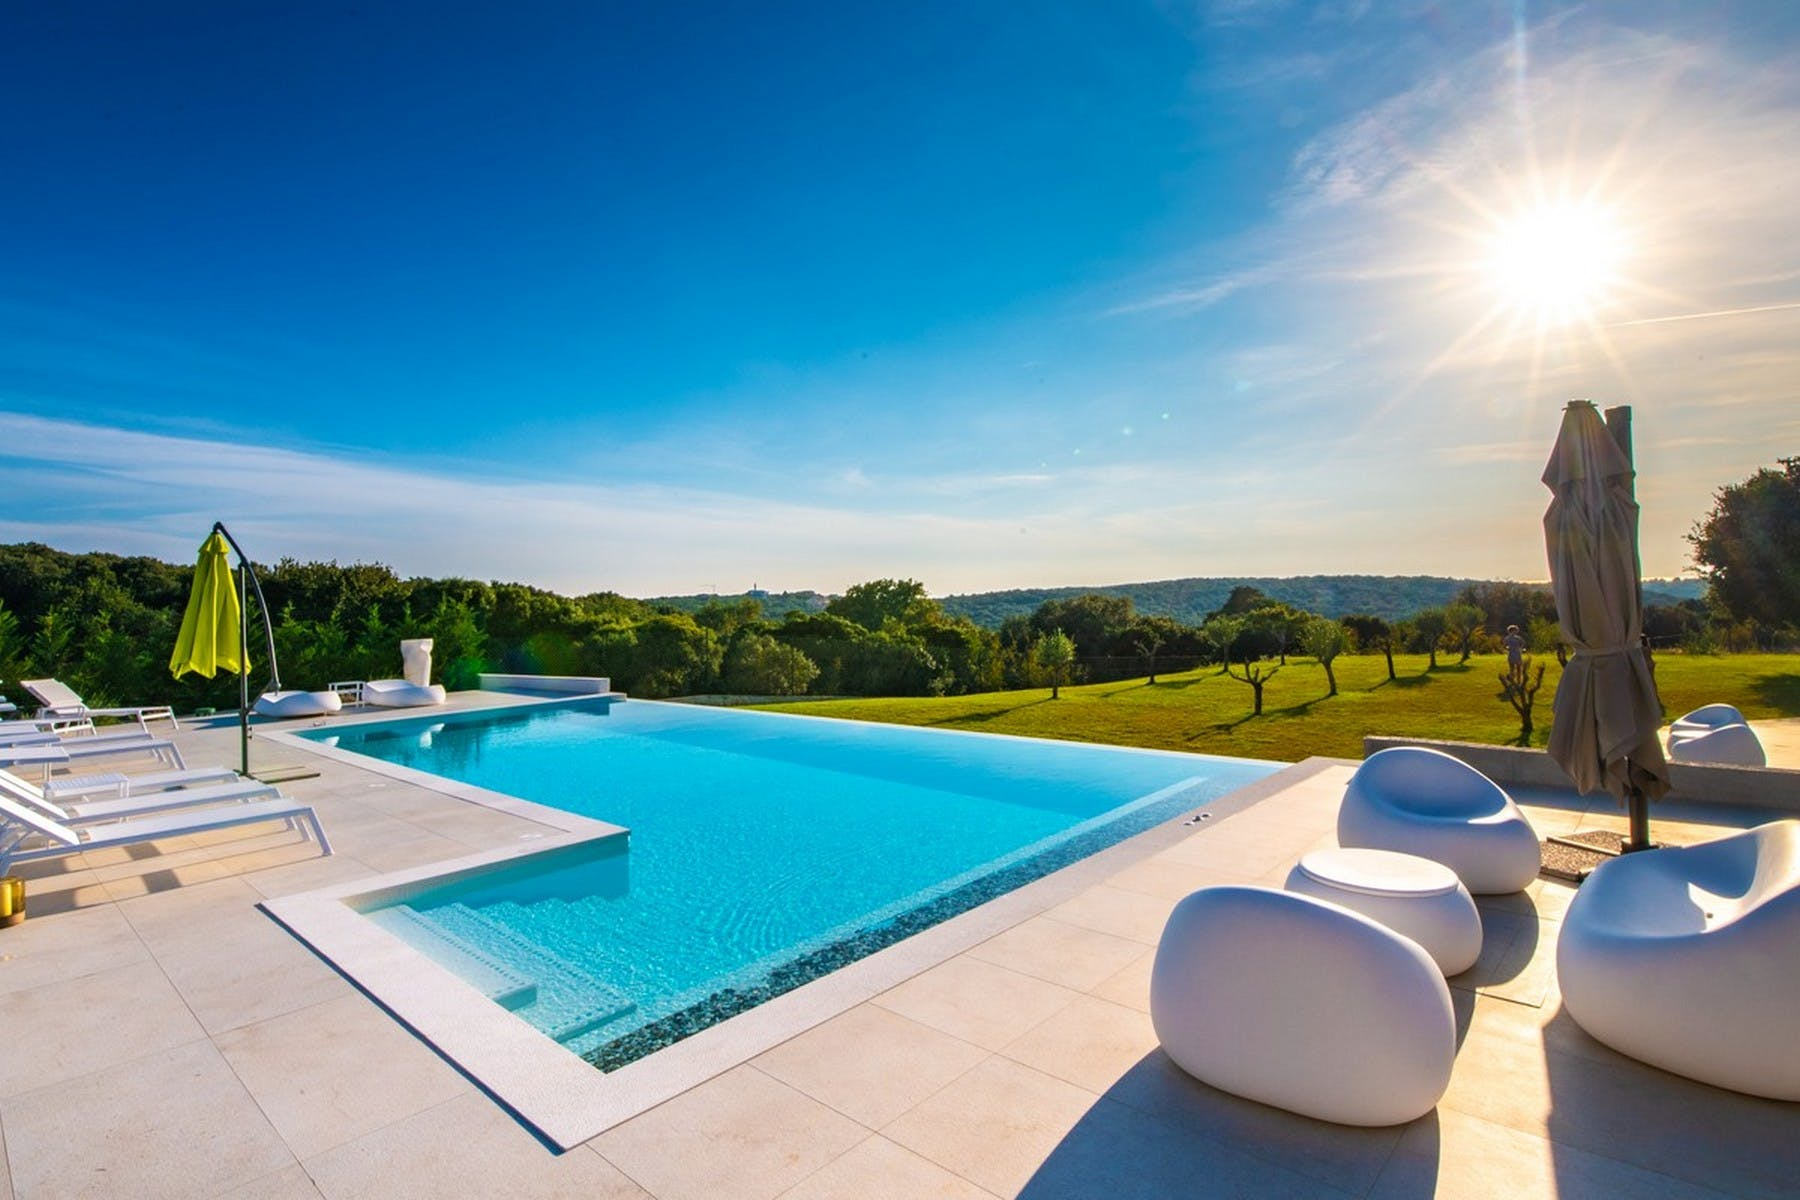 Pool area on a sunny day